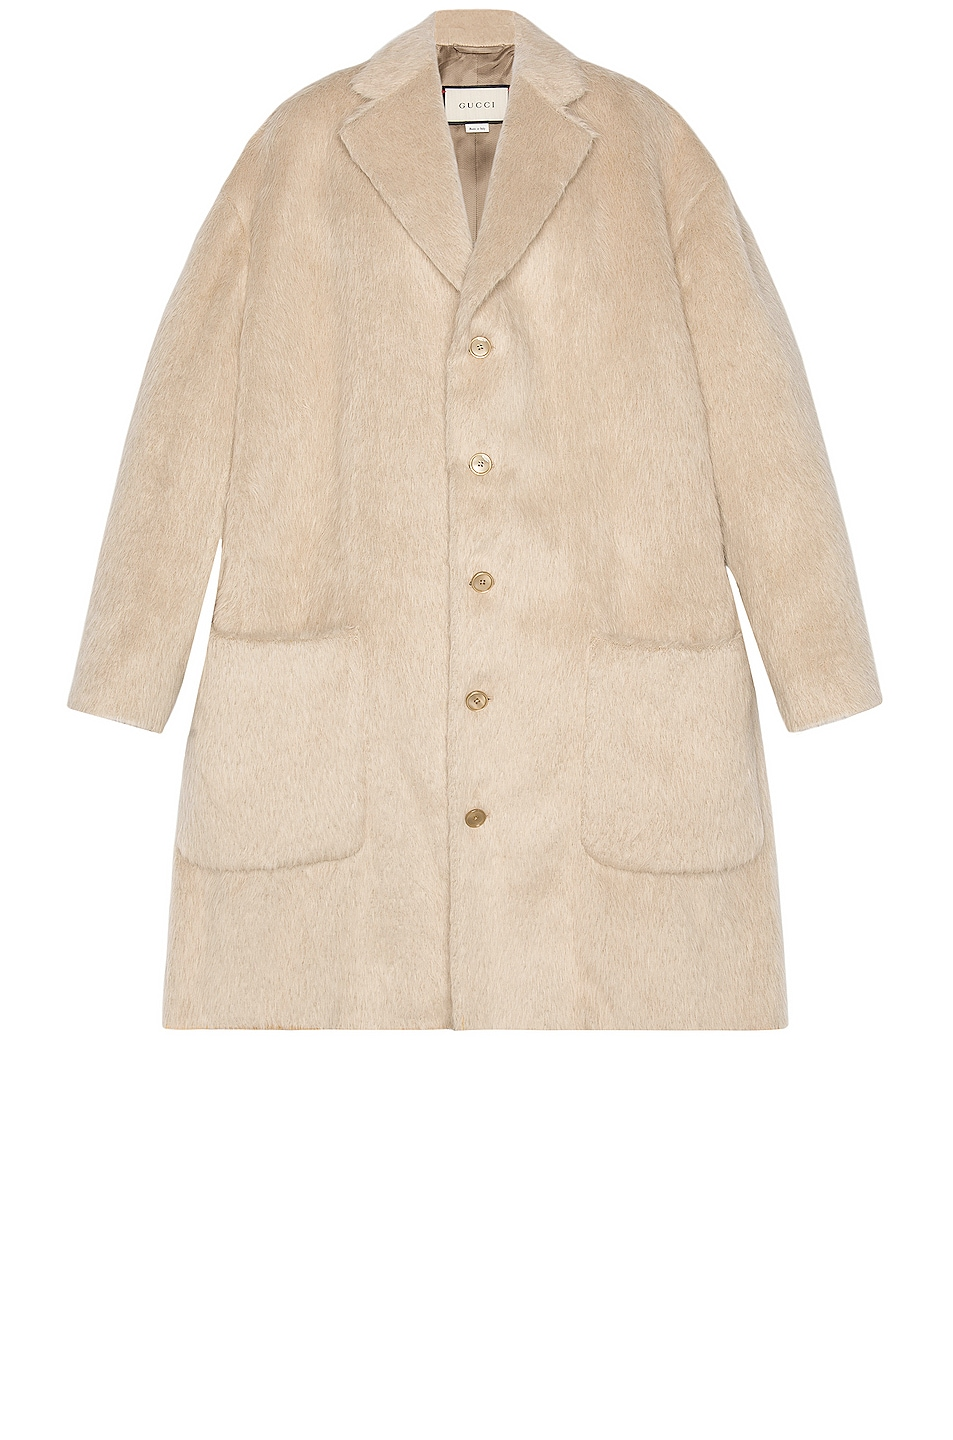 Image 1 of Gucci Overcoat in Birch Grey